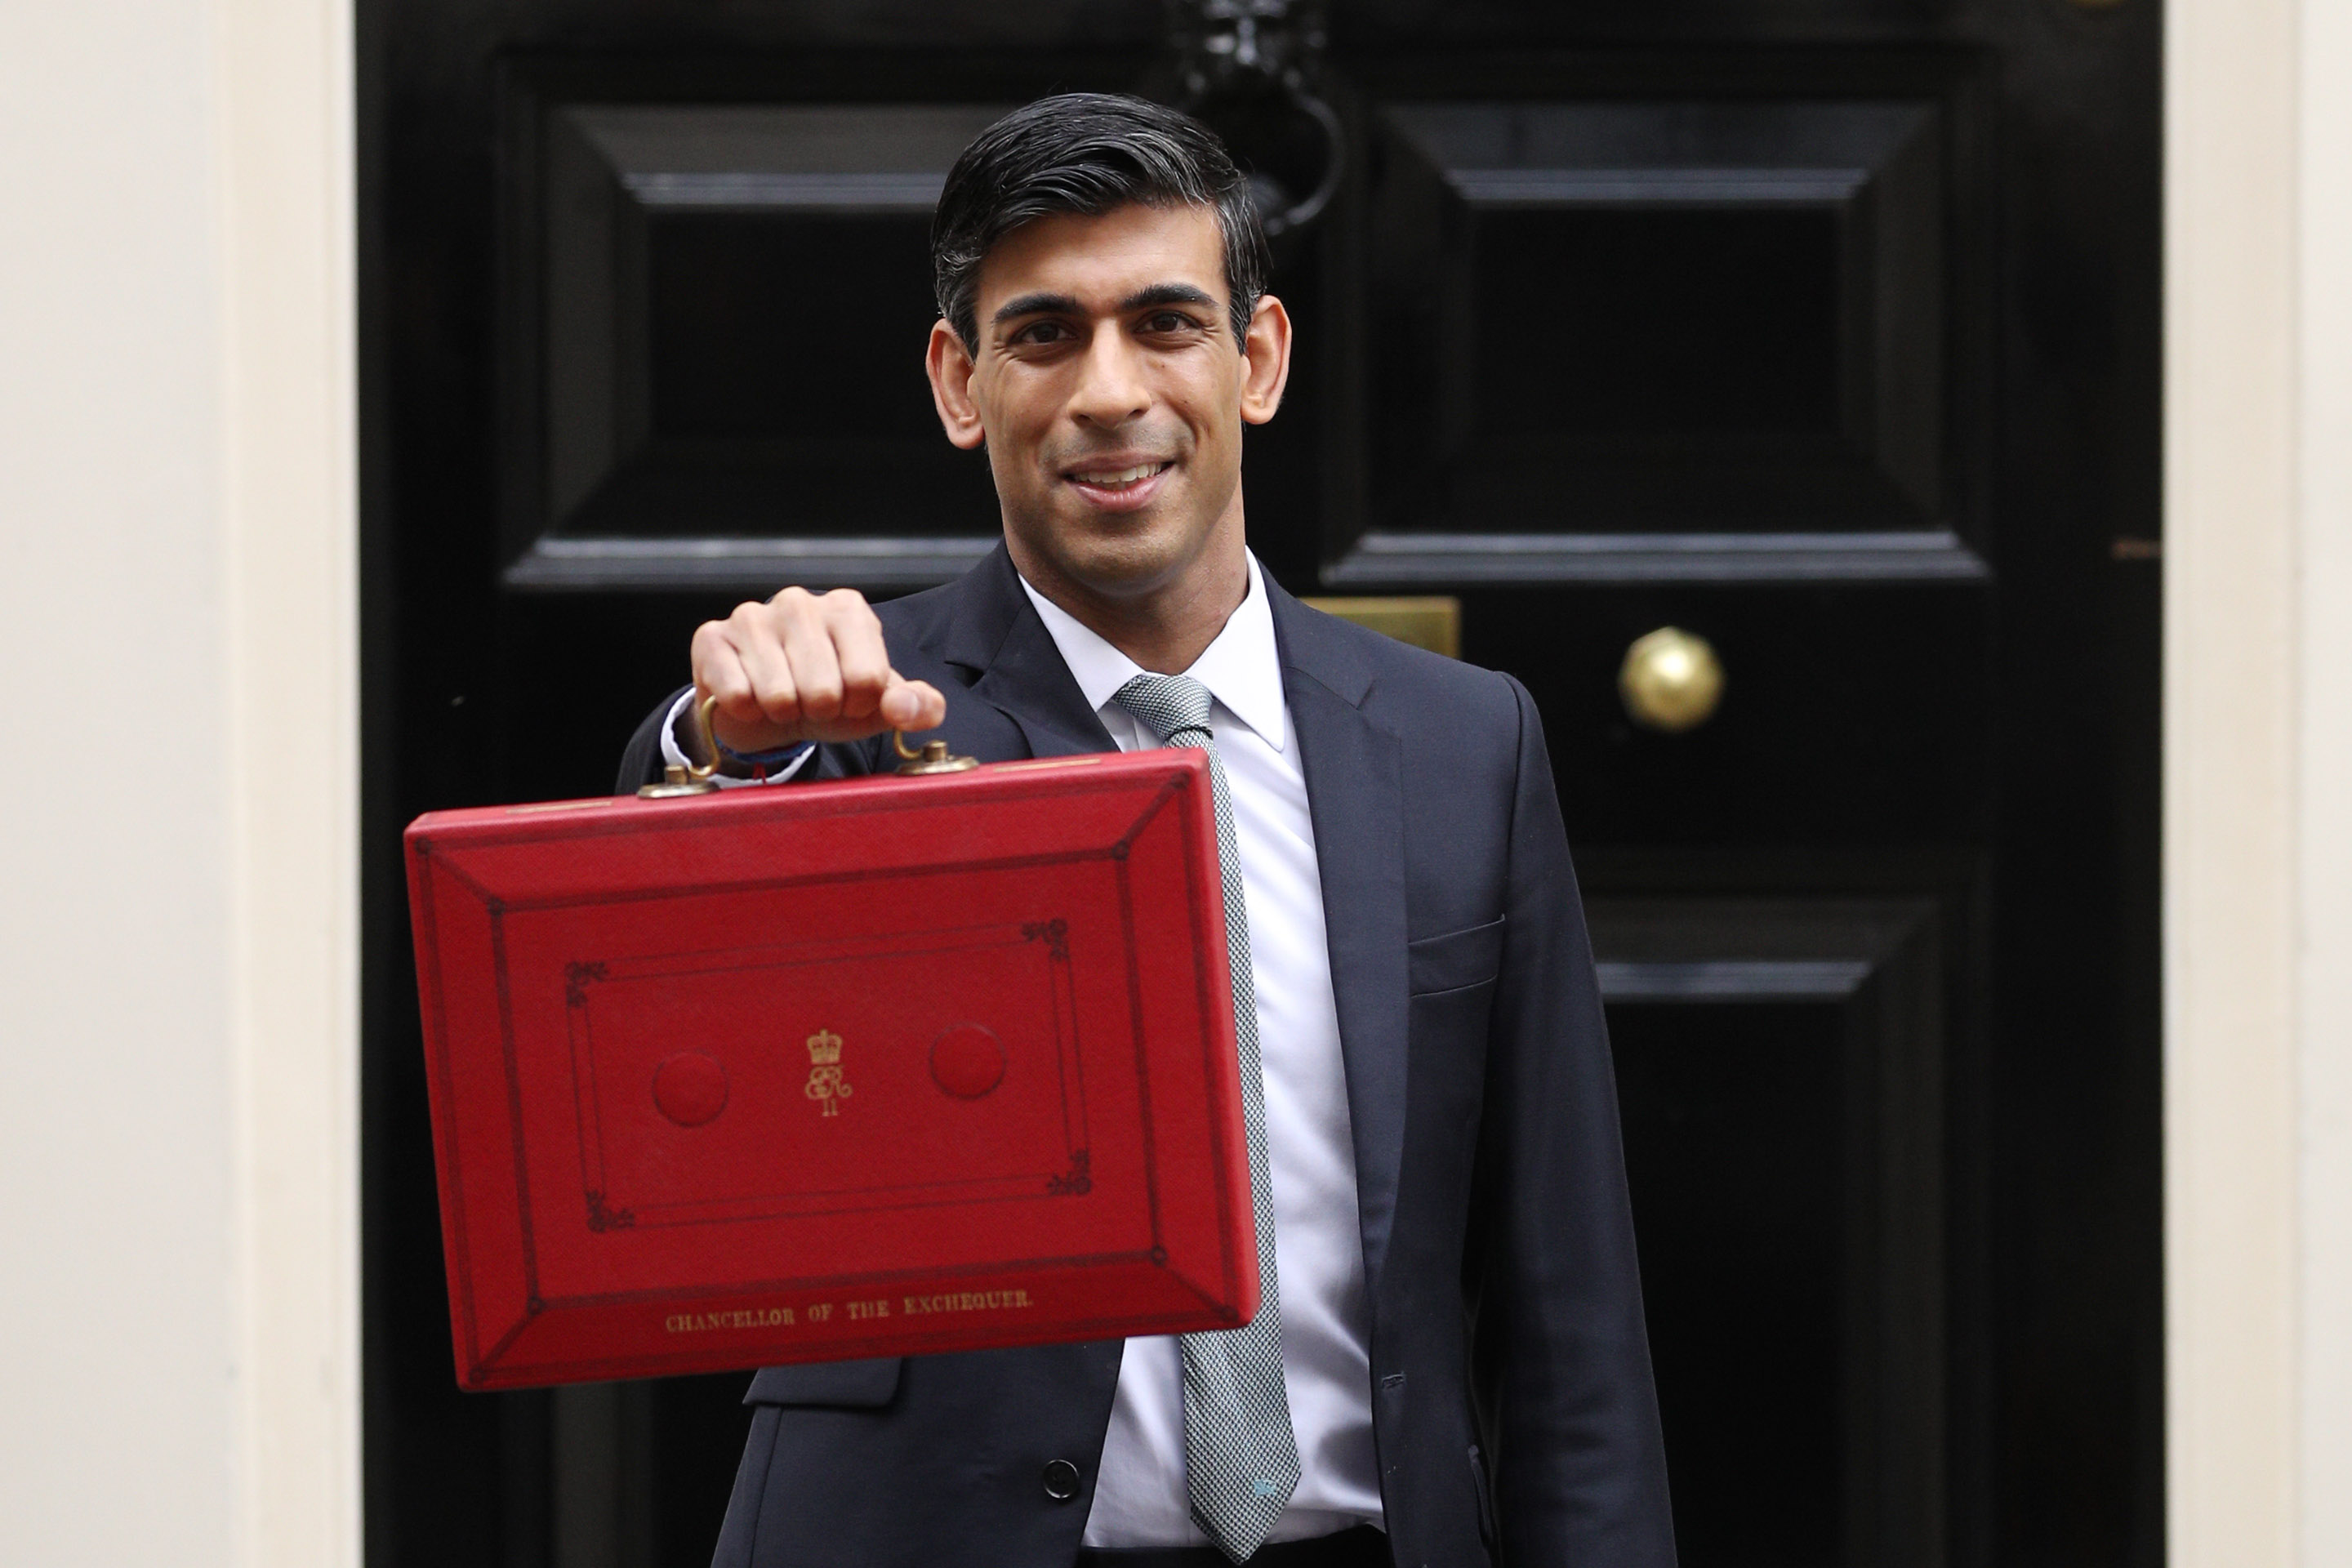 Chancellor Rishi Sunak will deliver the Budget in March